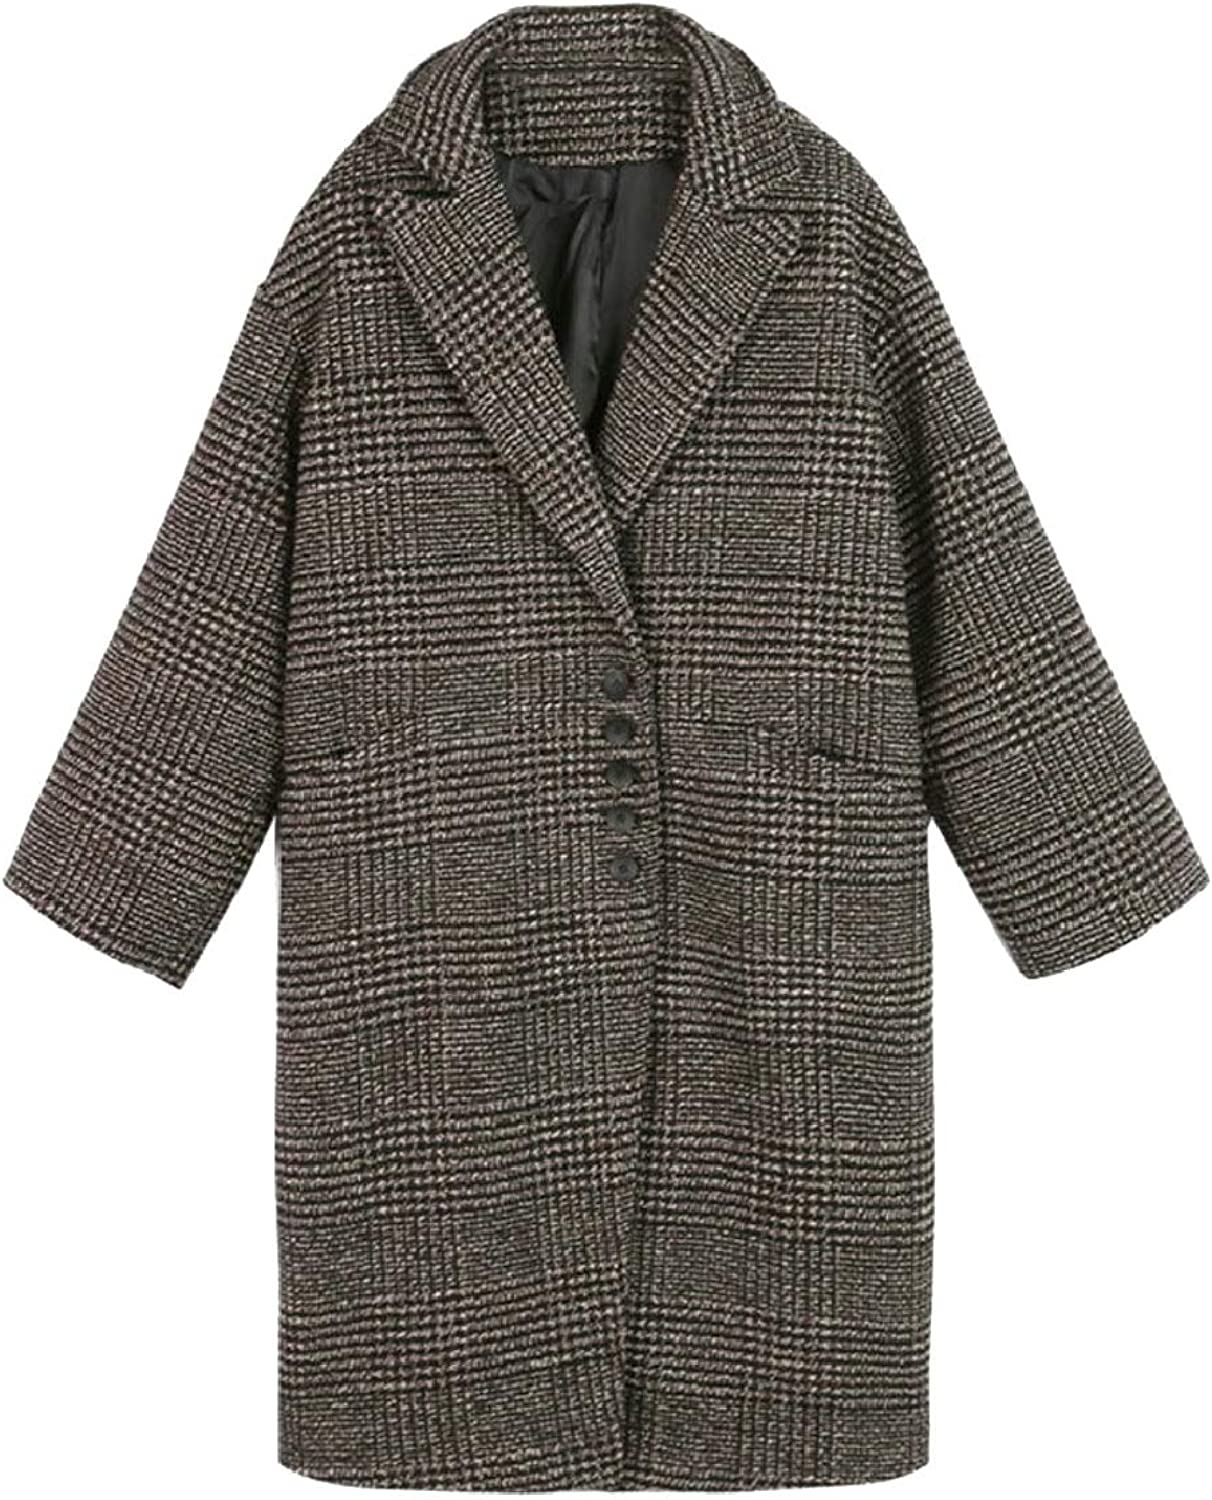 PujinggeCA Womens Checked Mid Long Overcoat Thick Wool Blend Houndstooth Jackets